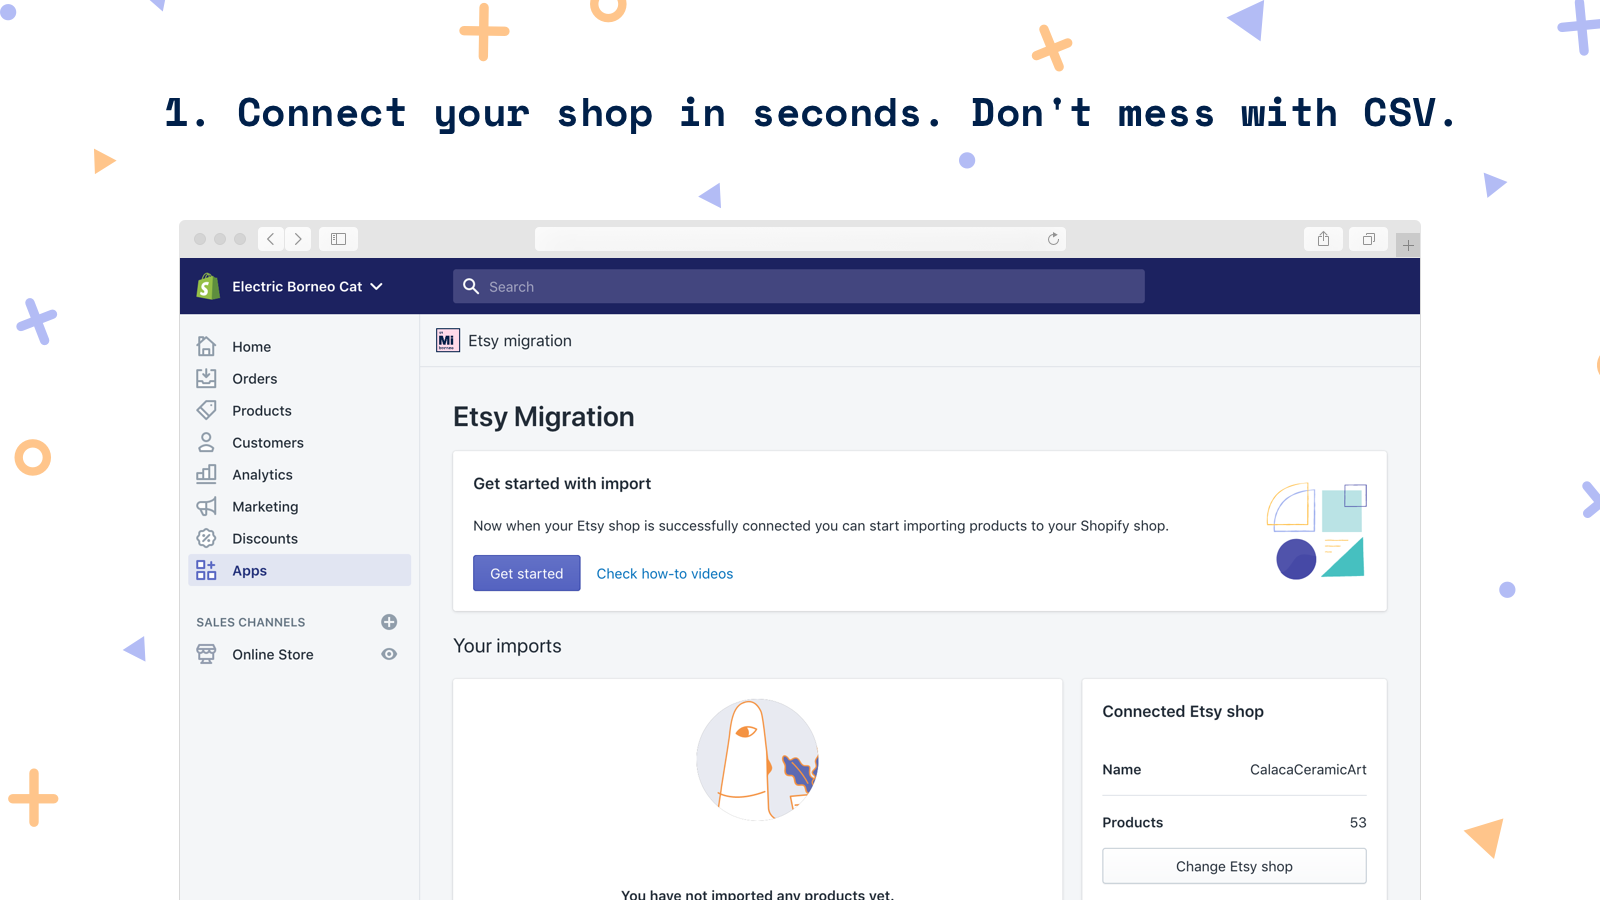 Connect your shop in seconds. Don't mess with CSV.